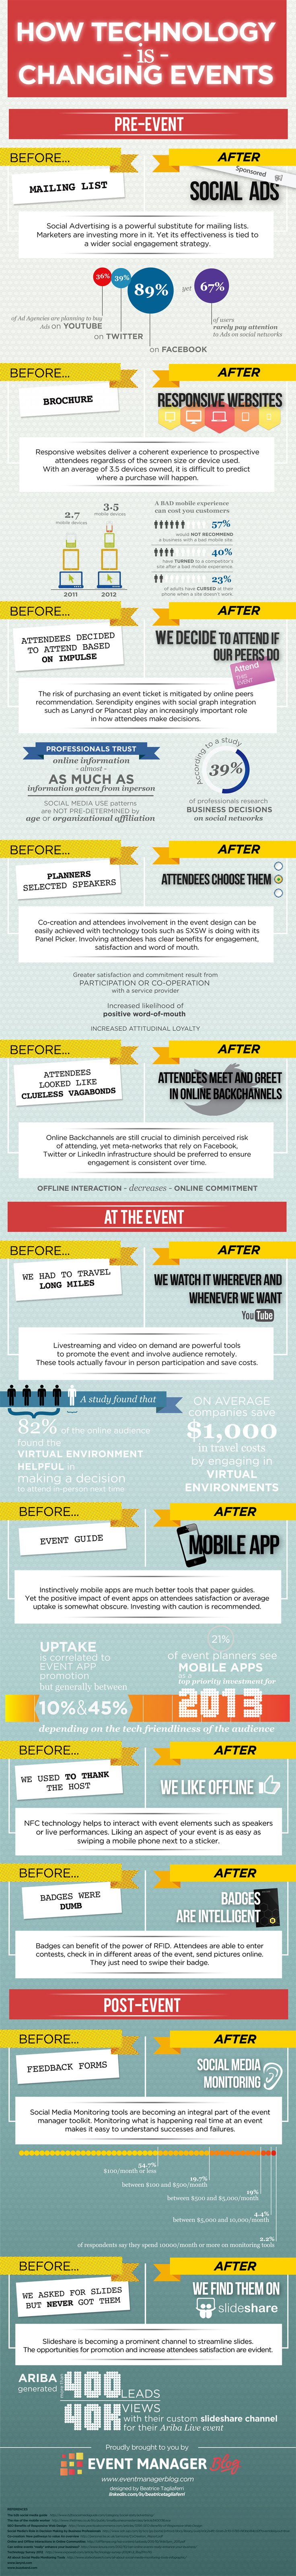 How Technology is changing events infographic